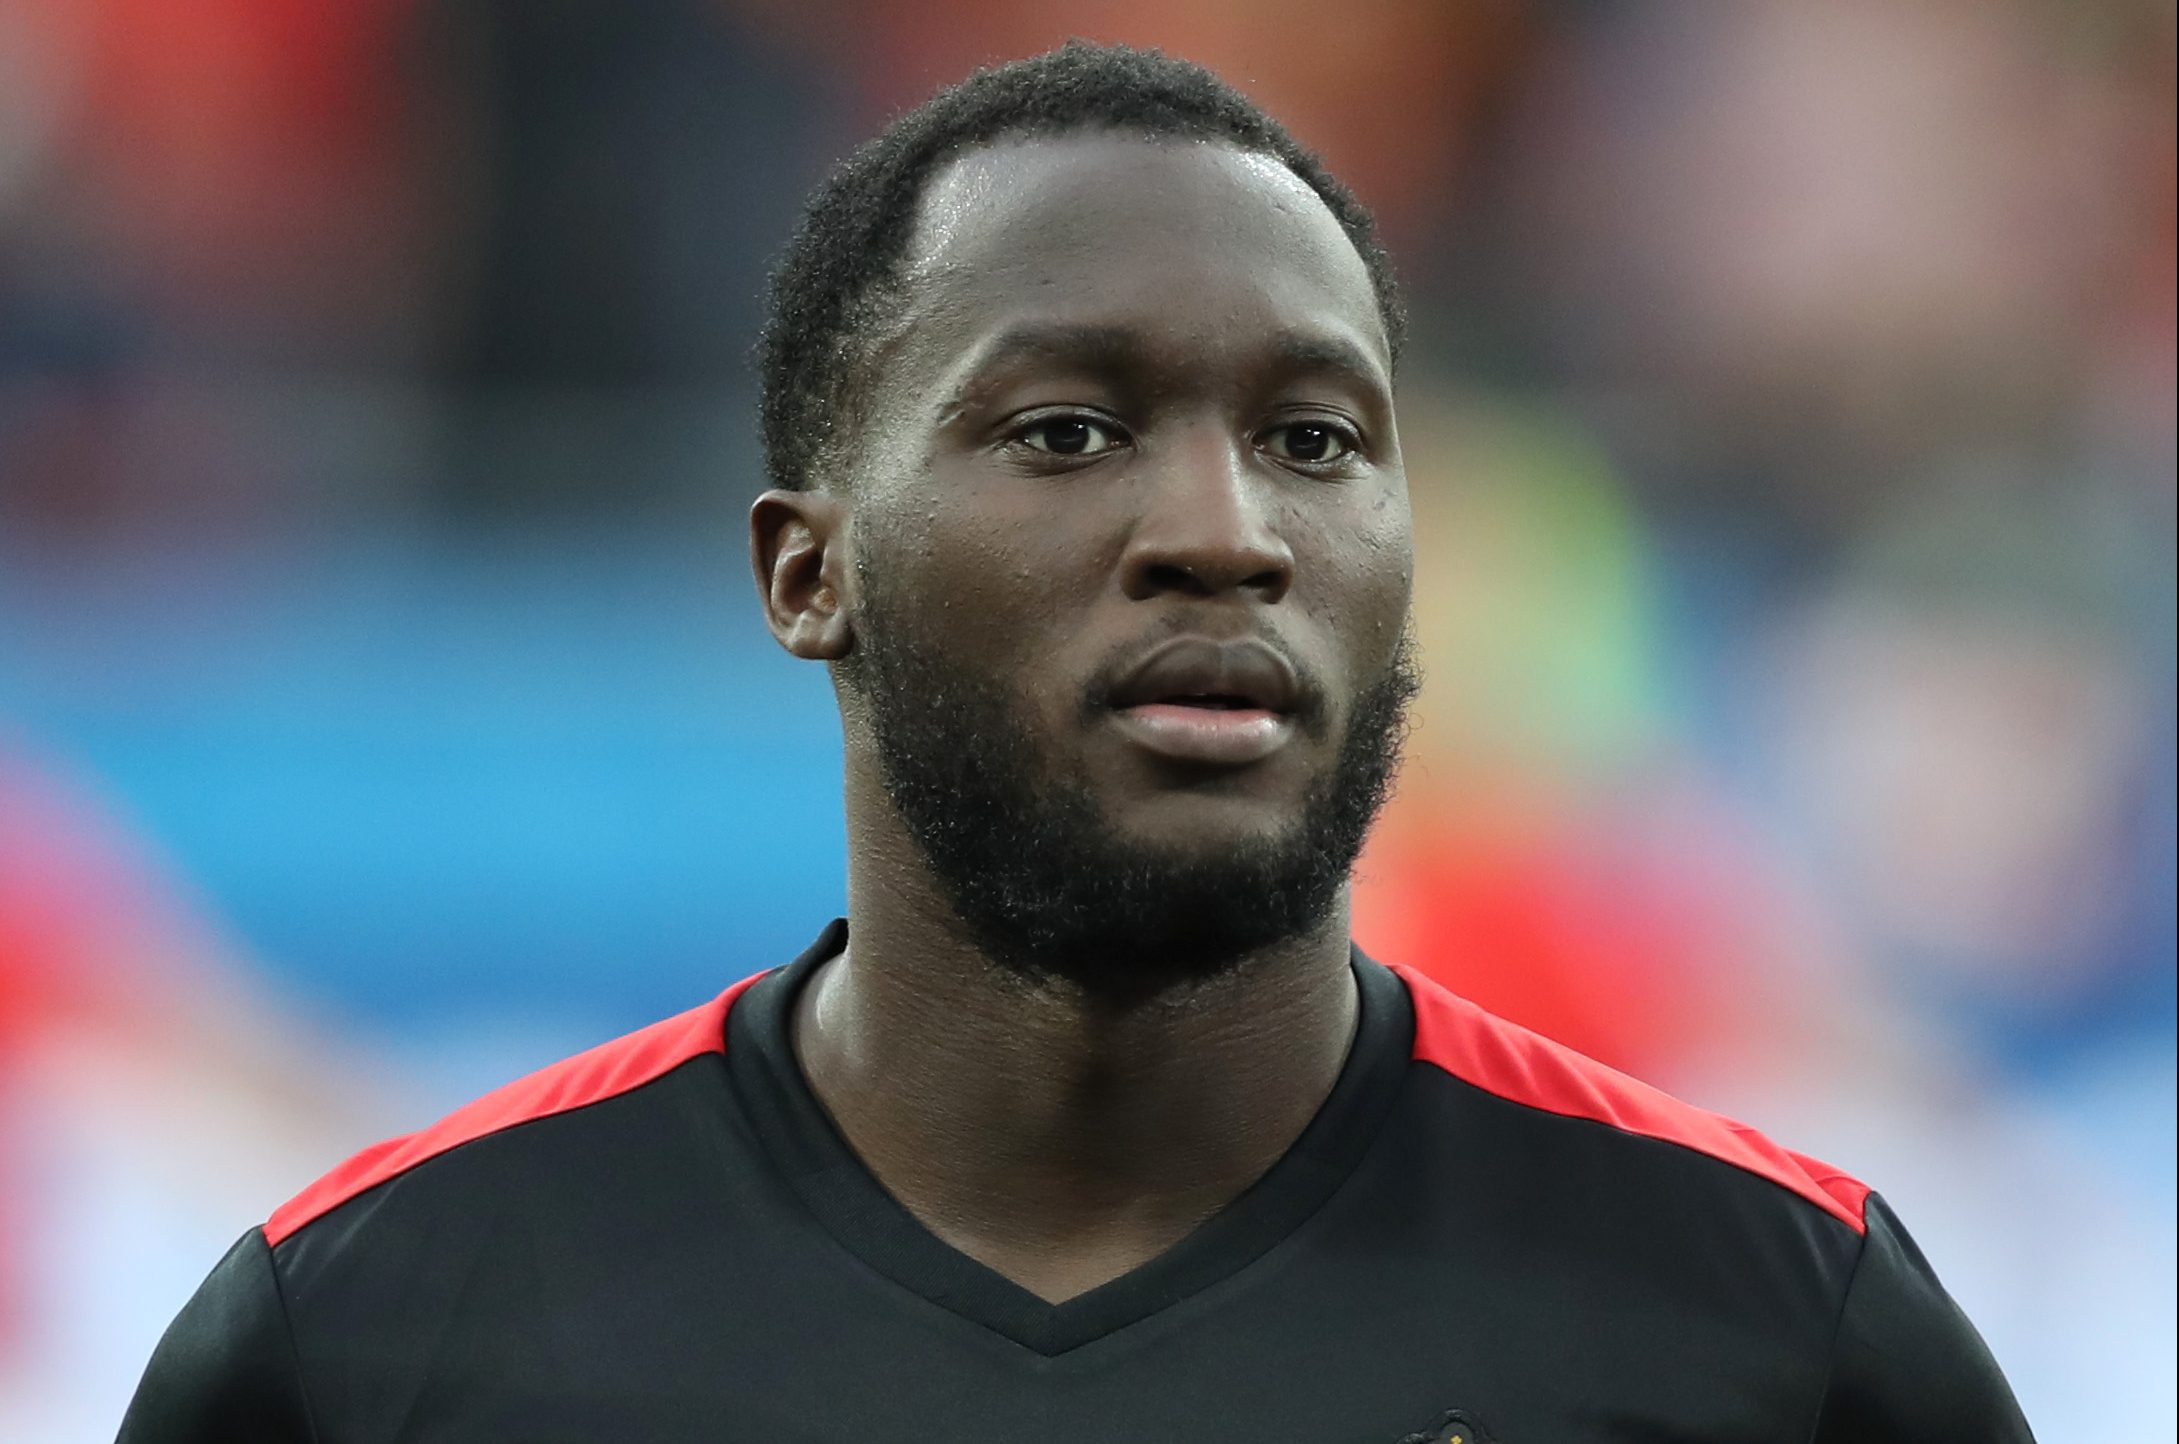 LYON, FRANCE - JUNE 13: Romelu Lukaku of Belgium looks on during the UEFA EURO 2016 Group E match between Belgium and Italy at Stade des Lumieres on June 13, 2016 in Lyon, France. (Photo by Ian MacNicol/Getty Images)